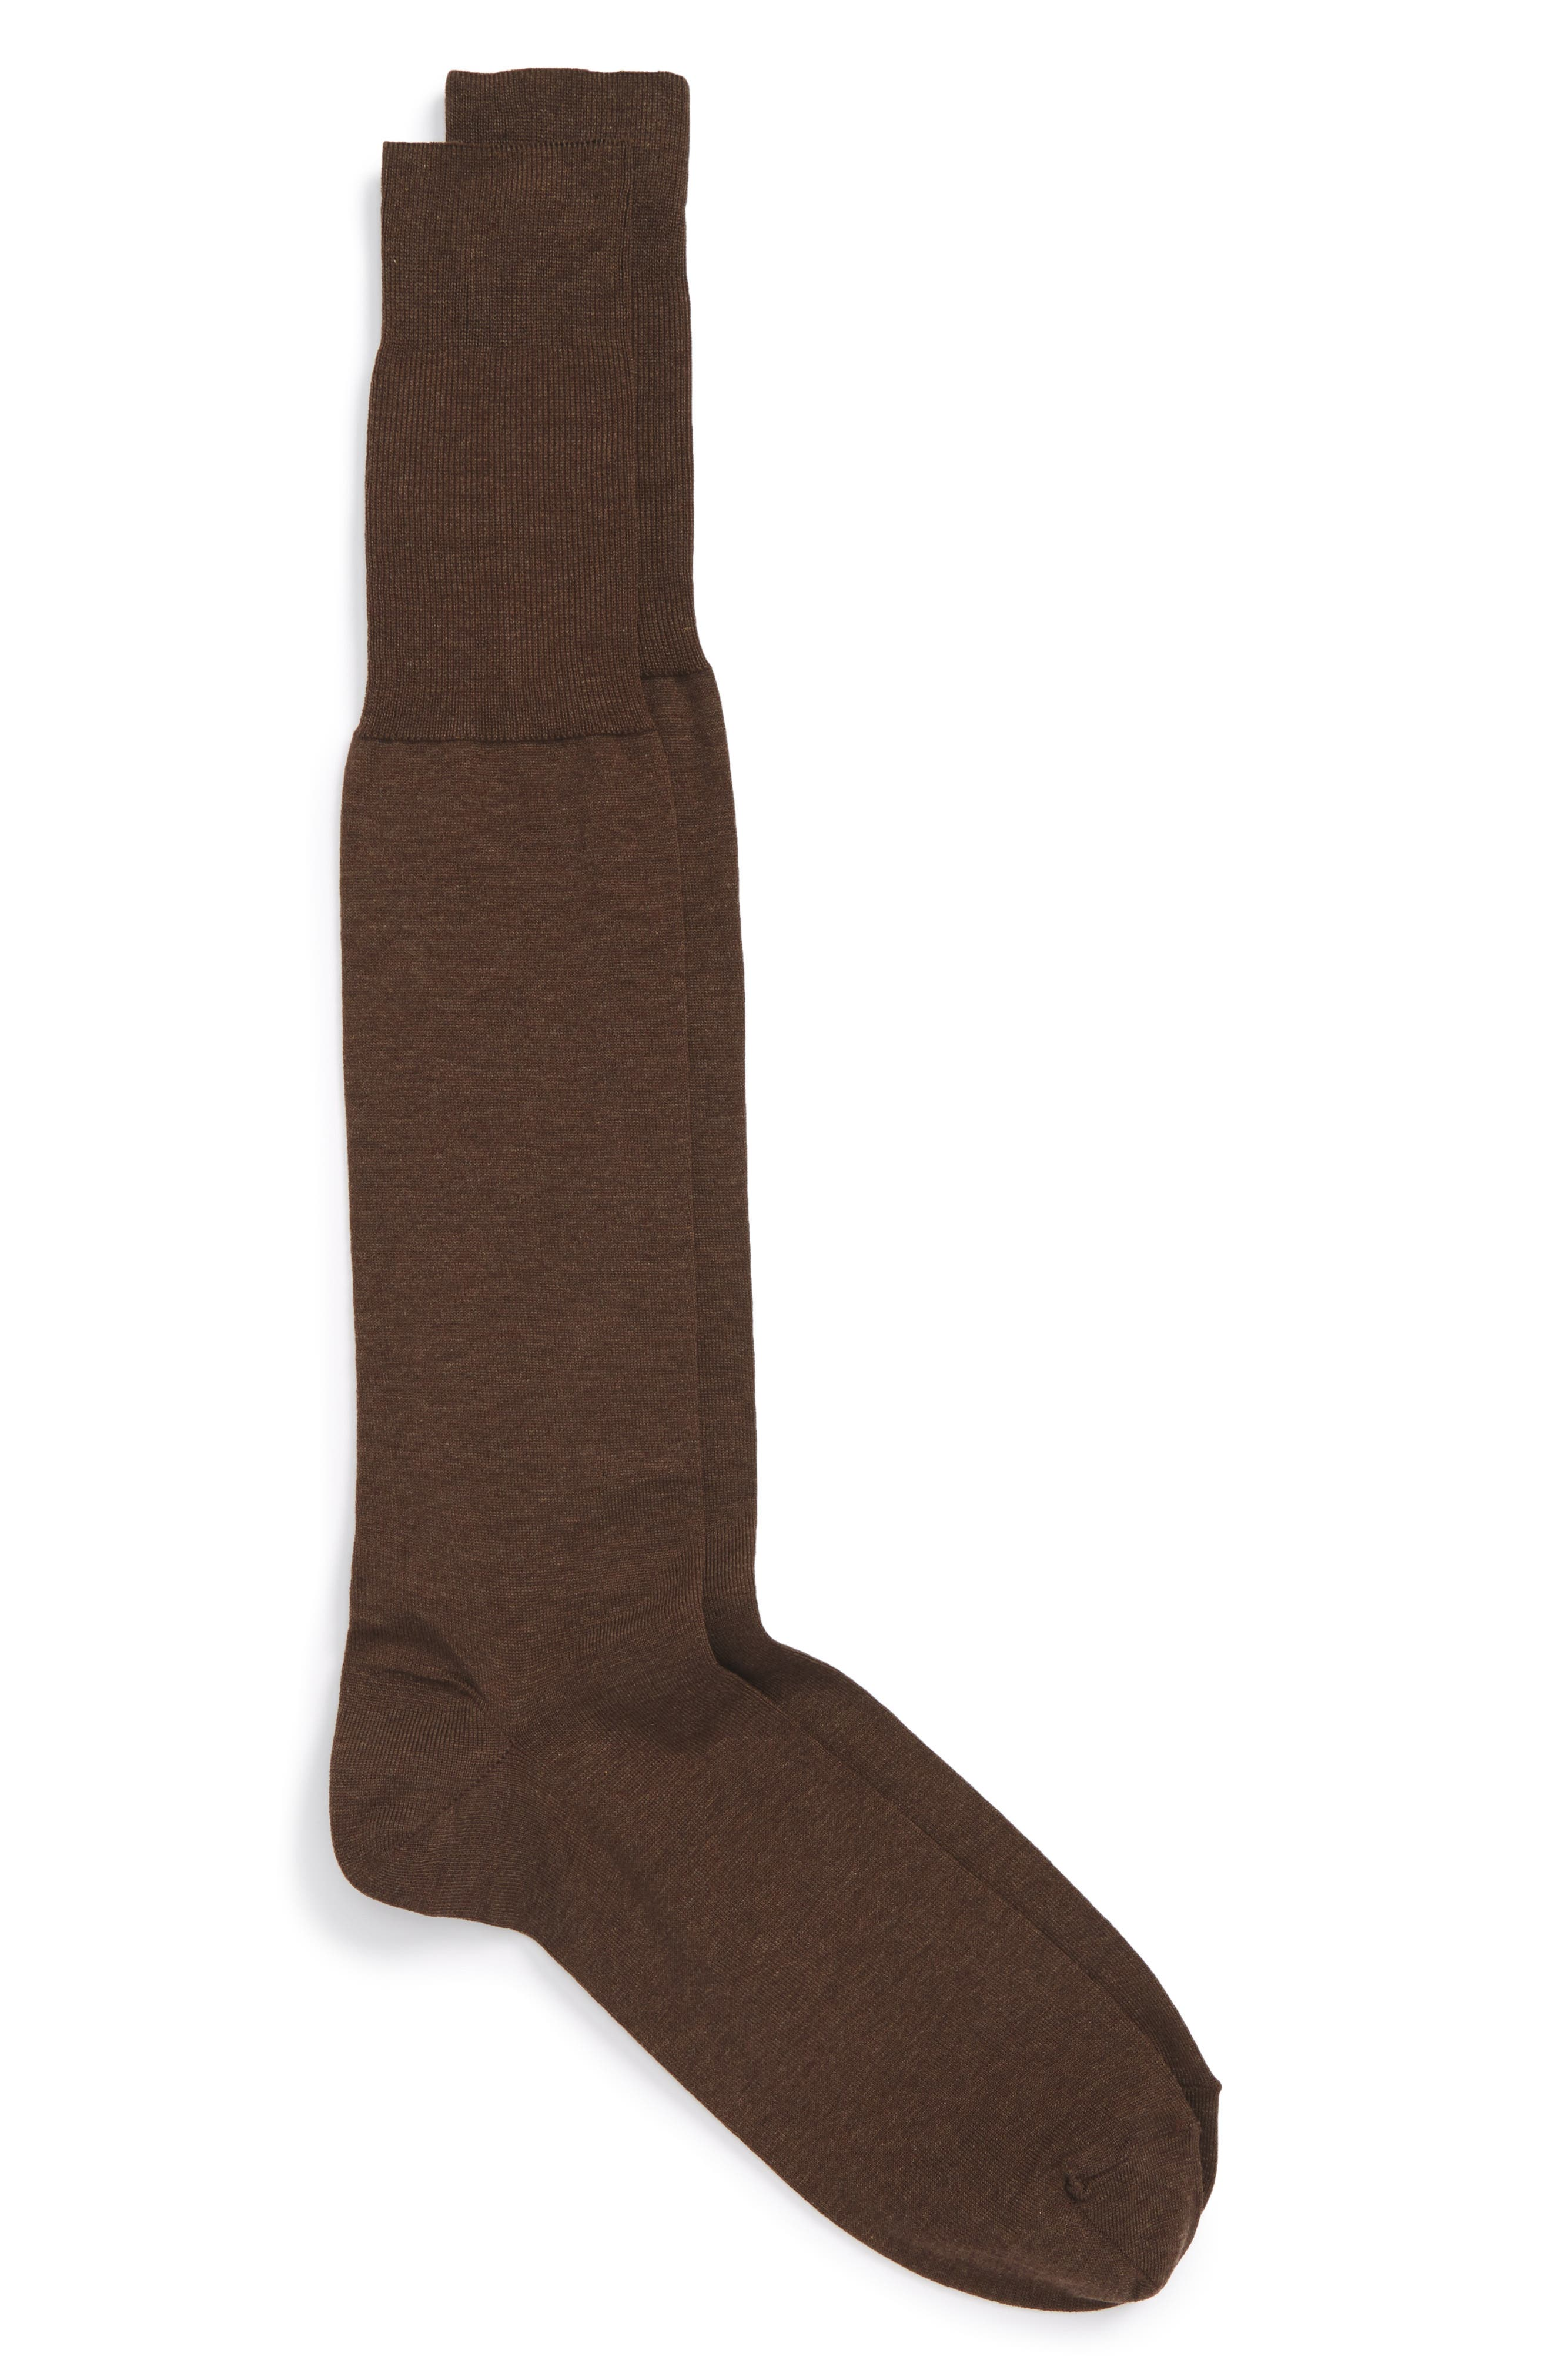 John W. Nordstrom Solid Over the Calf Socks,                             Main thumbnail 1, color,                             BROWN HEATHER